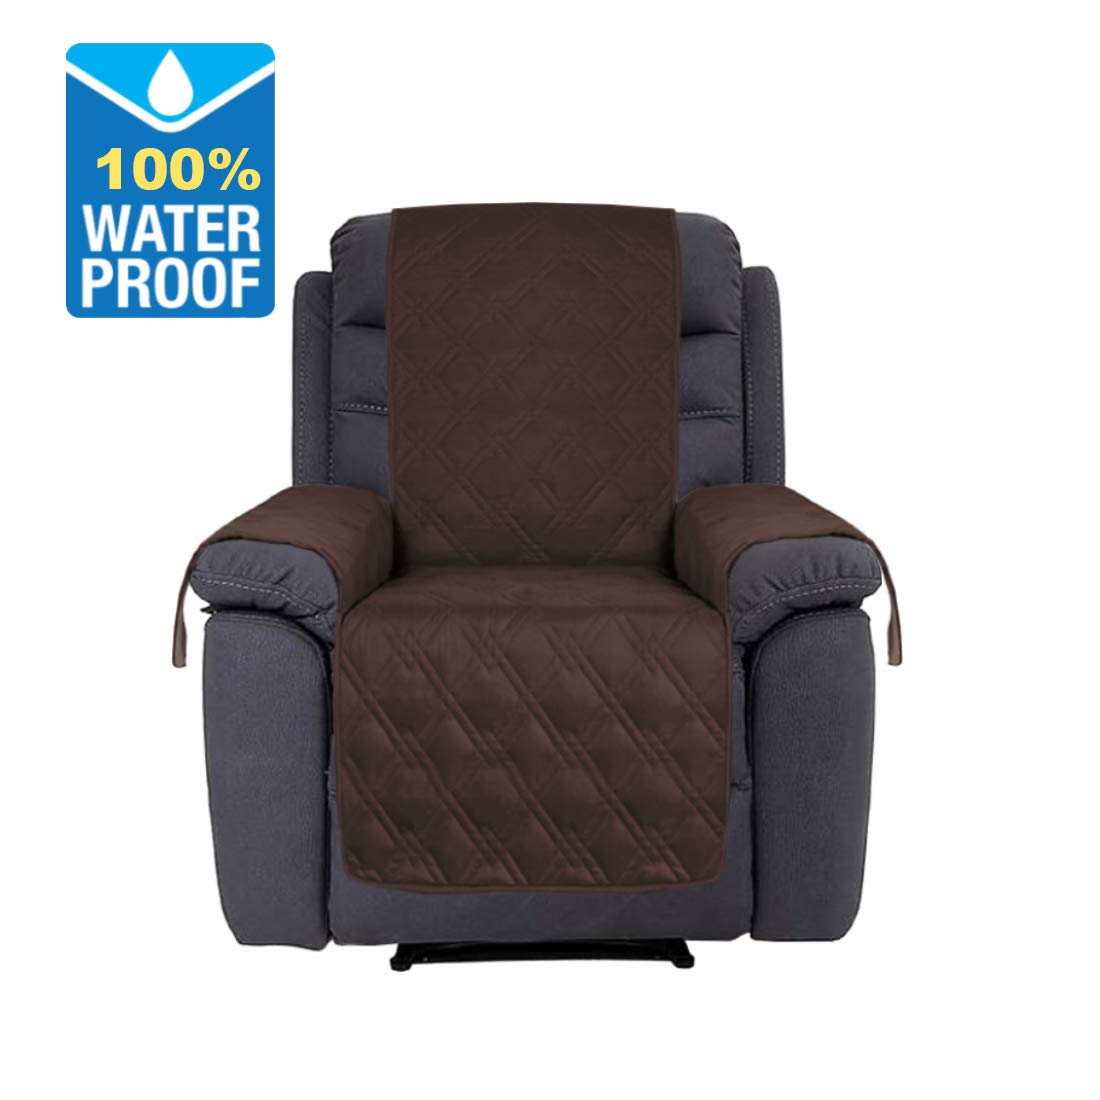 H.VERSAILTEX 100% Waterproof Furniture Cover with Silicon Rubber Print Non-Slip Sofa Protector for Pets, 91 inch x 84 inch (Oversized Recliner: Brown)